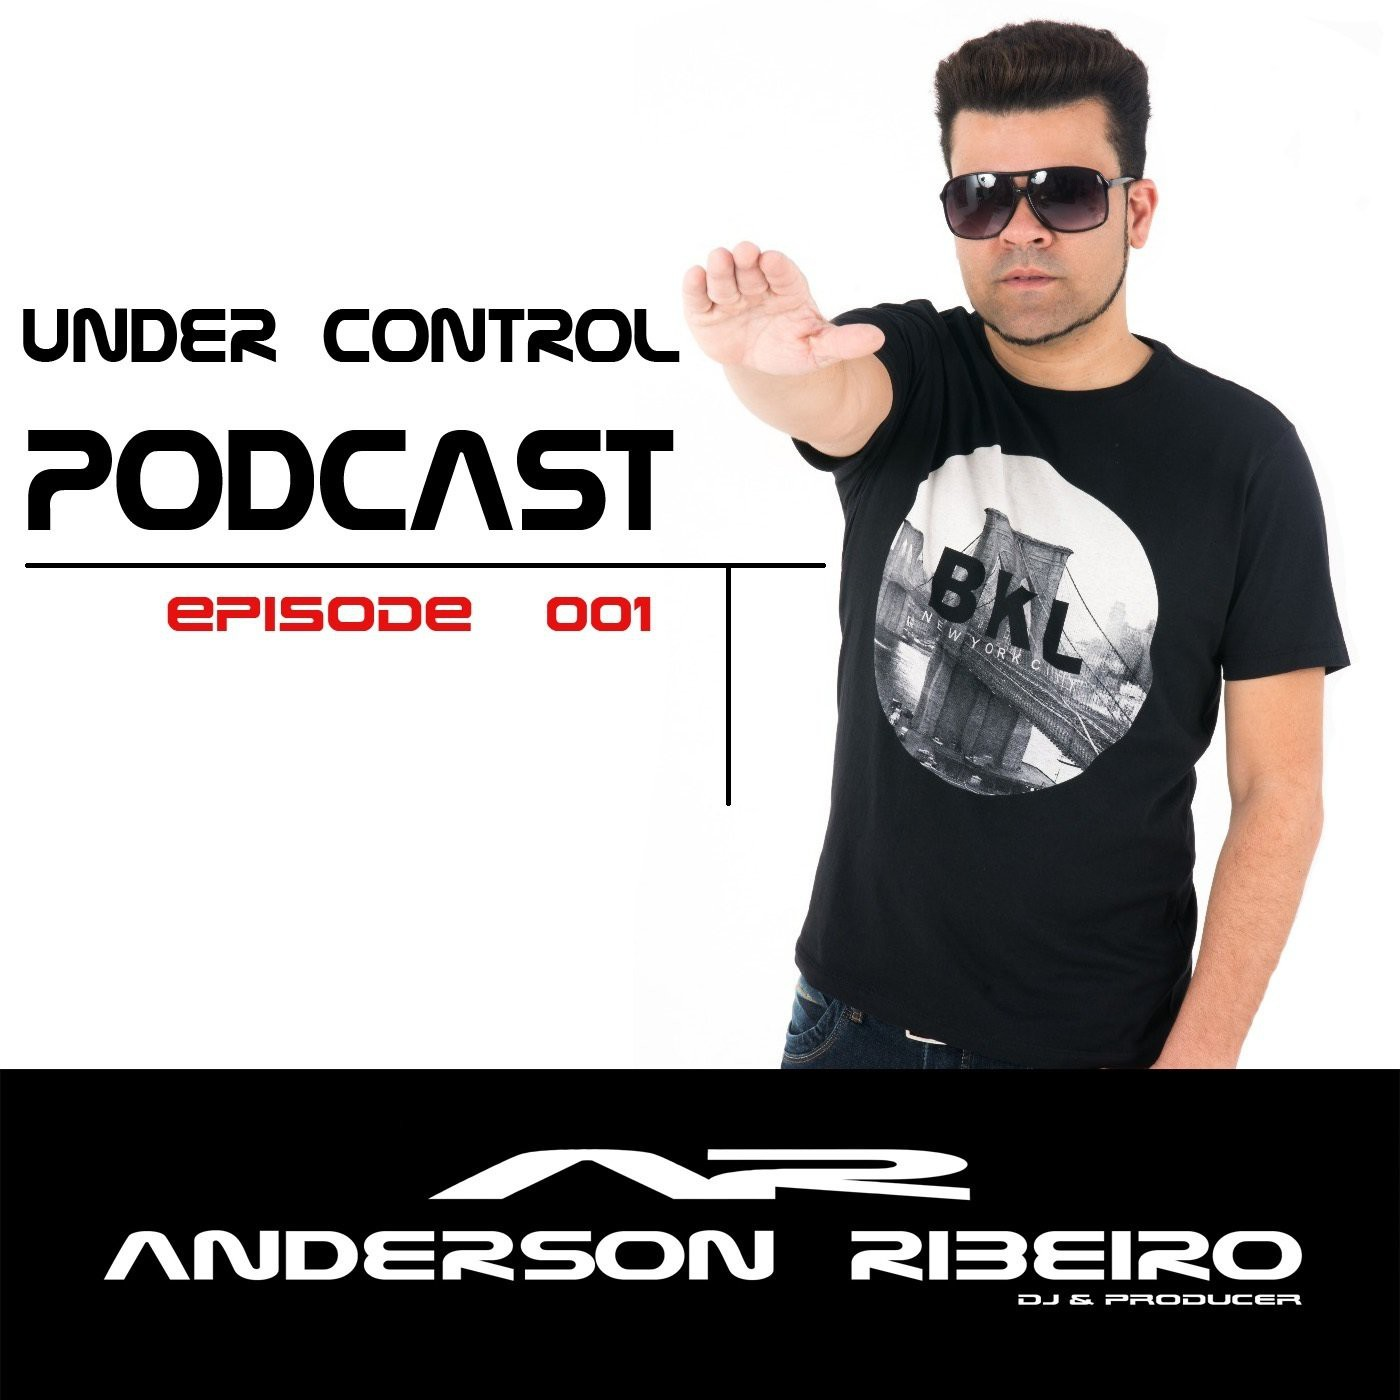 <![CDATA[Under Control @ Podcast ( Episode 001 )by Anderson]]>